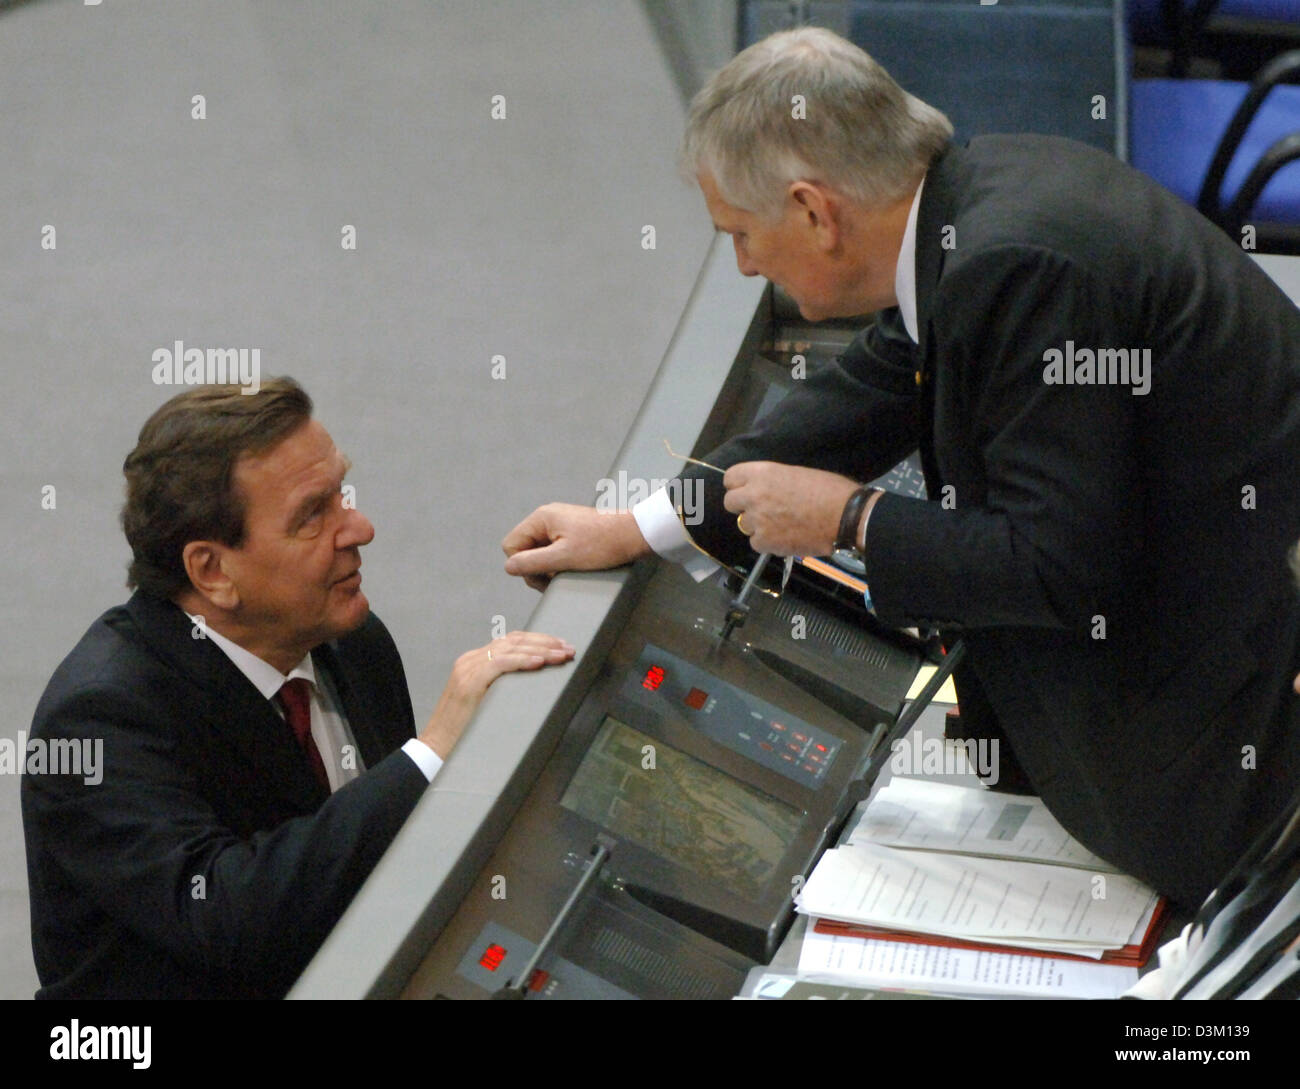 (dpa) - German Chancellor Gerhard Schroeder (L) talks to German Minister of the Interior Otto Schily ahead of the first session of the new Bundestag parliament at the Reichstag  in Berlin, Germany, Tuesday, 18 October 2005. The parliament has come together for the first time since the general election for the German Bundestag in September, in order to elect the new President of the Stock Photo